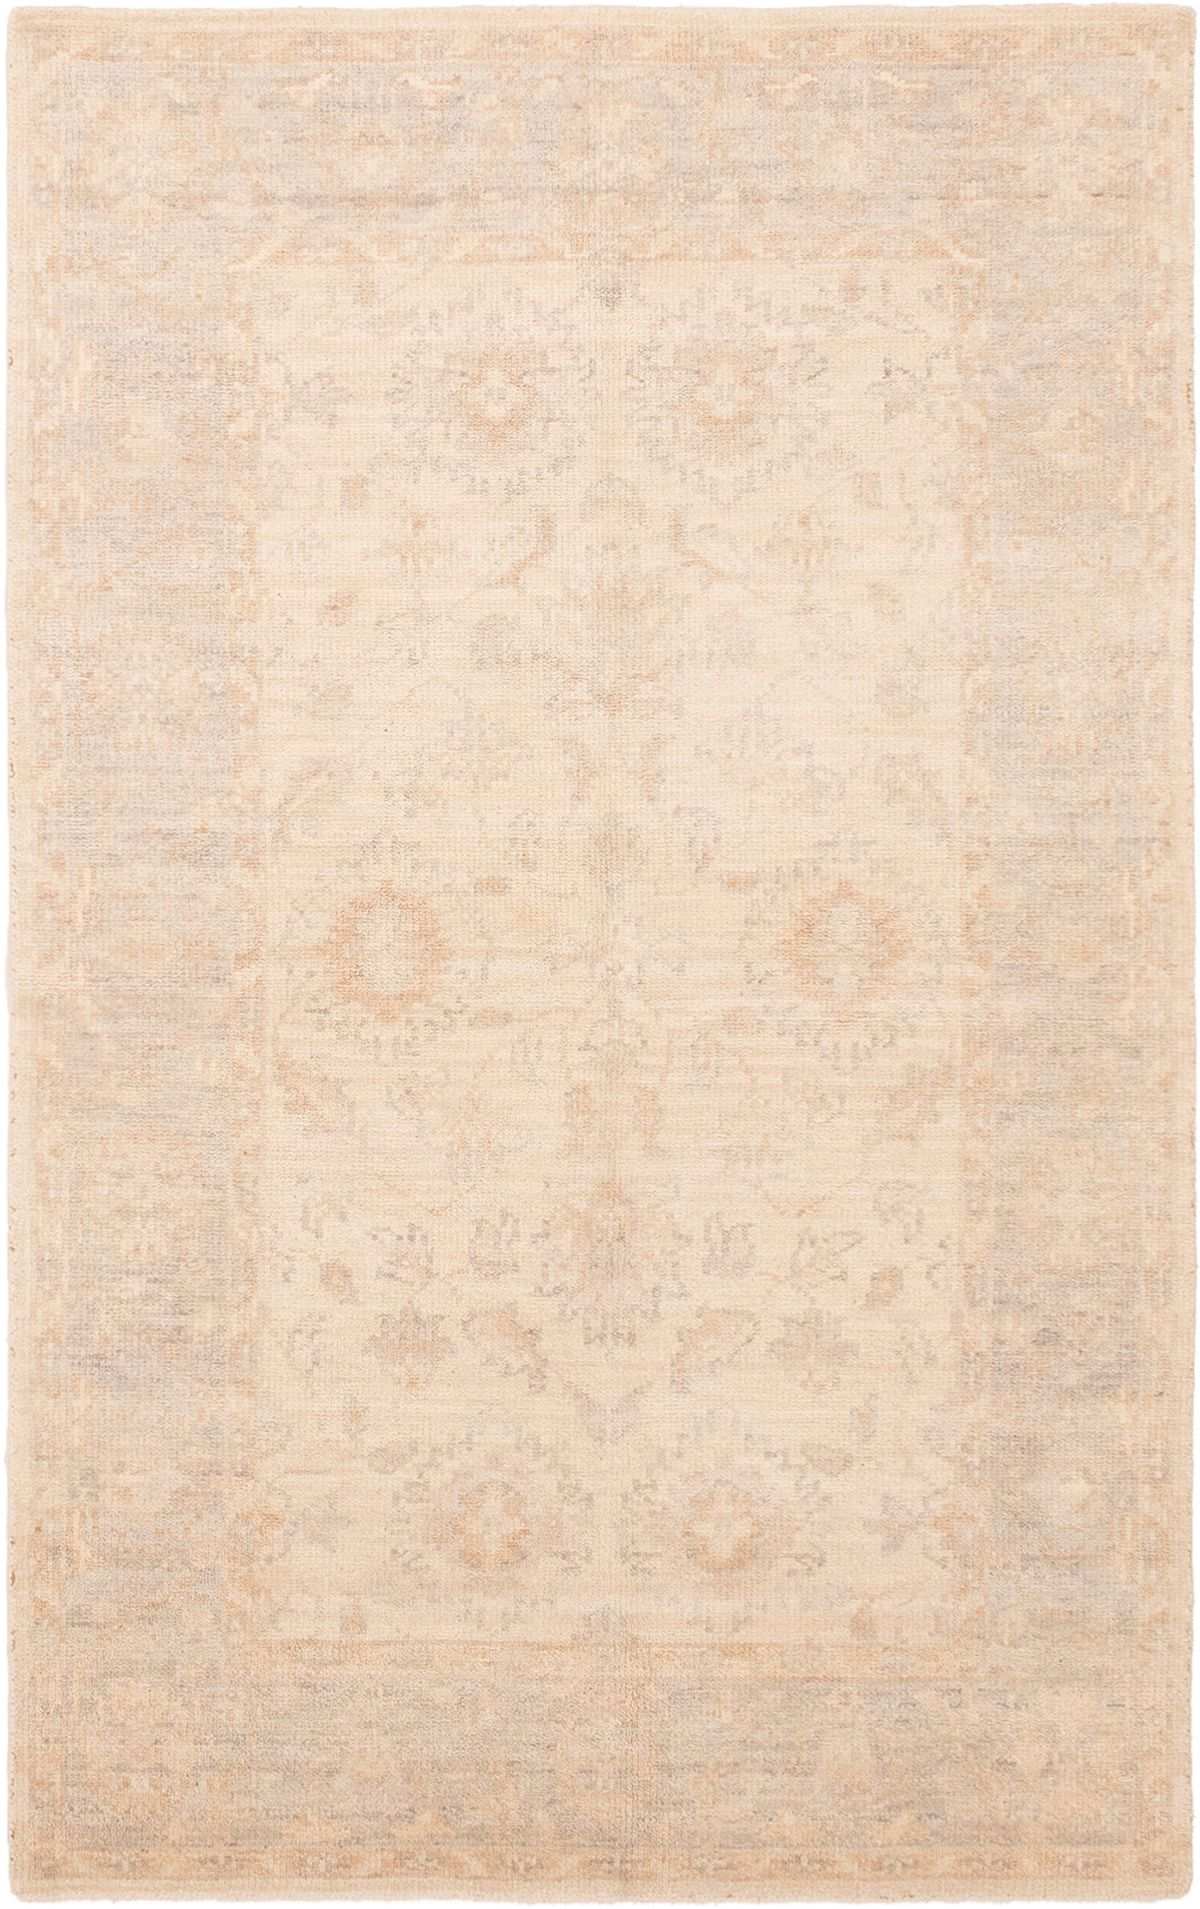 "Hand-knotted Eternity Cream Wool Rug 5'0"" x 8'0""  Size: 5'0"" x 8'0"""